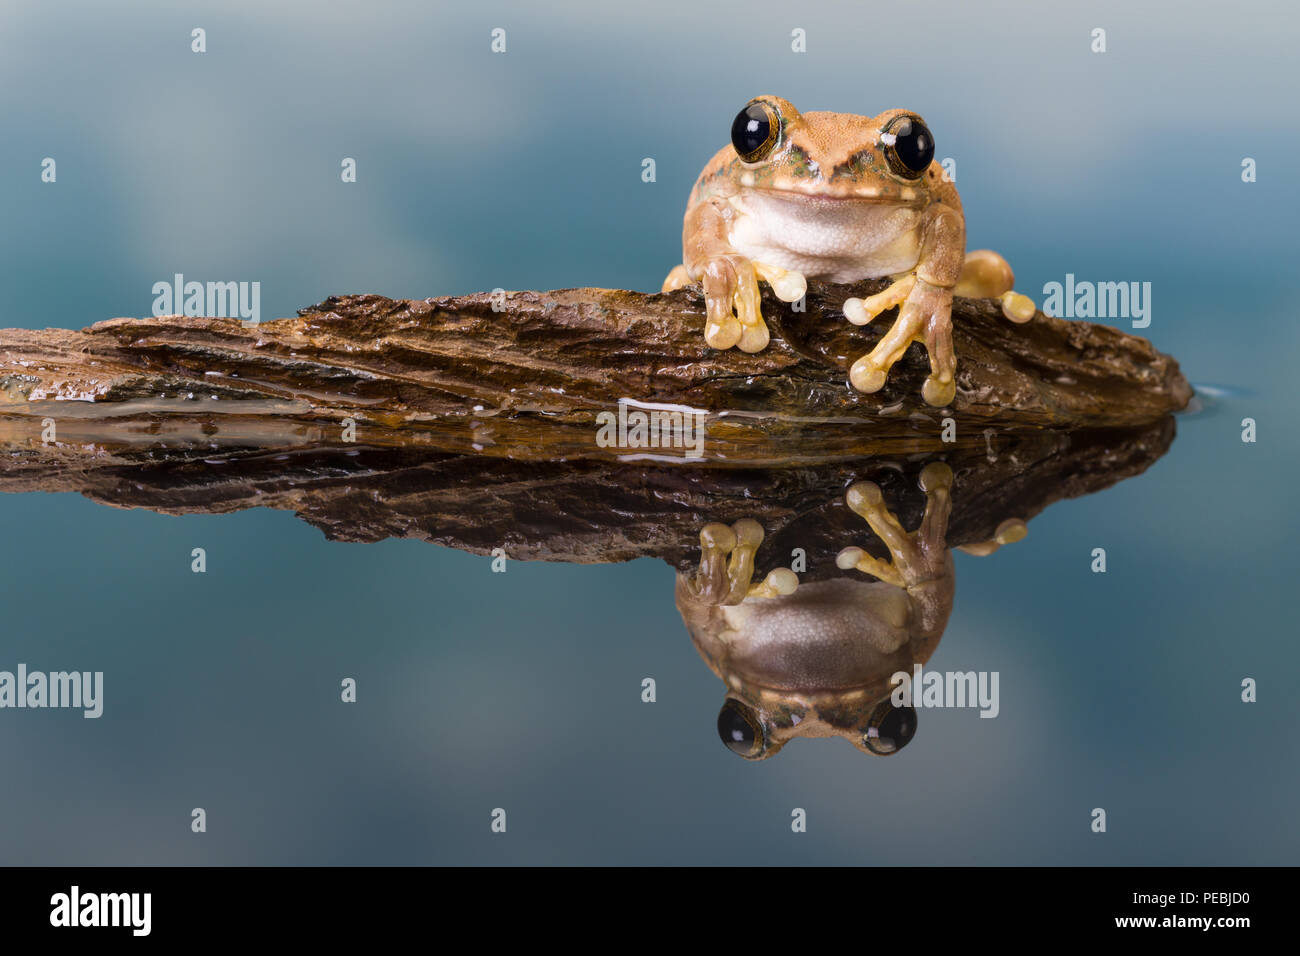 The Mission golden-eyed tree frog or Amazon milk frog (Trachycephalus resinifictrix) is a large tree frog of the Amazon Rainforest - Stock Image